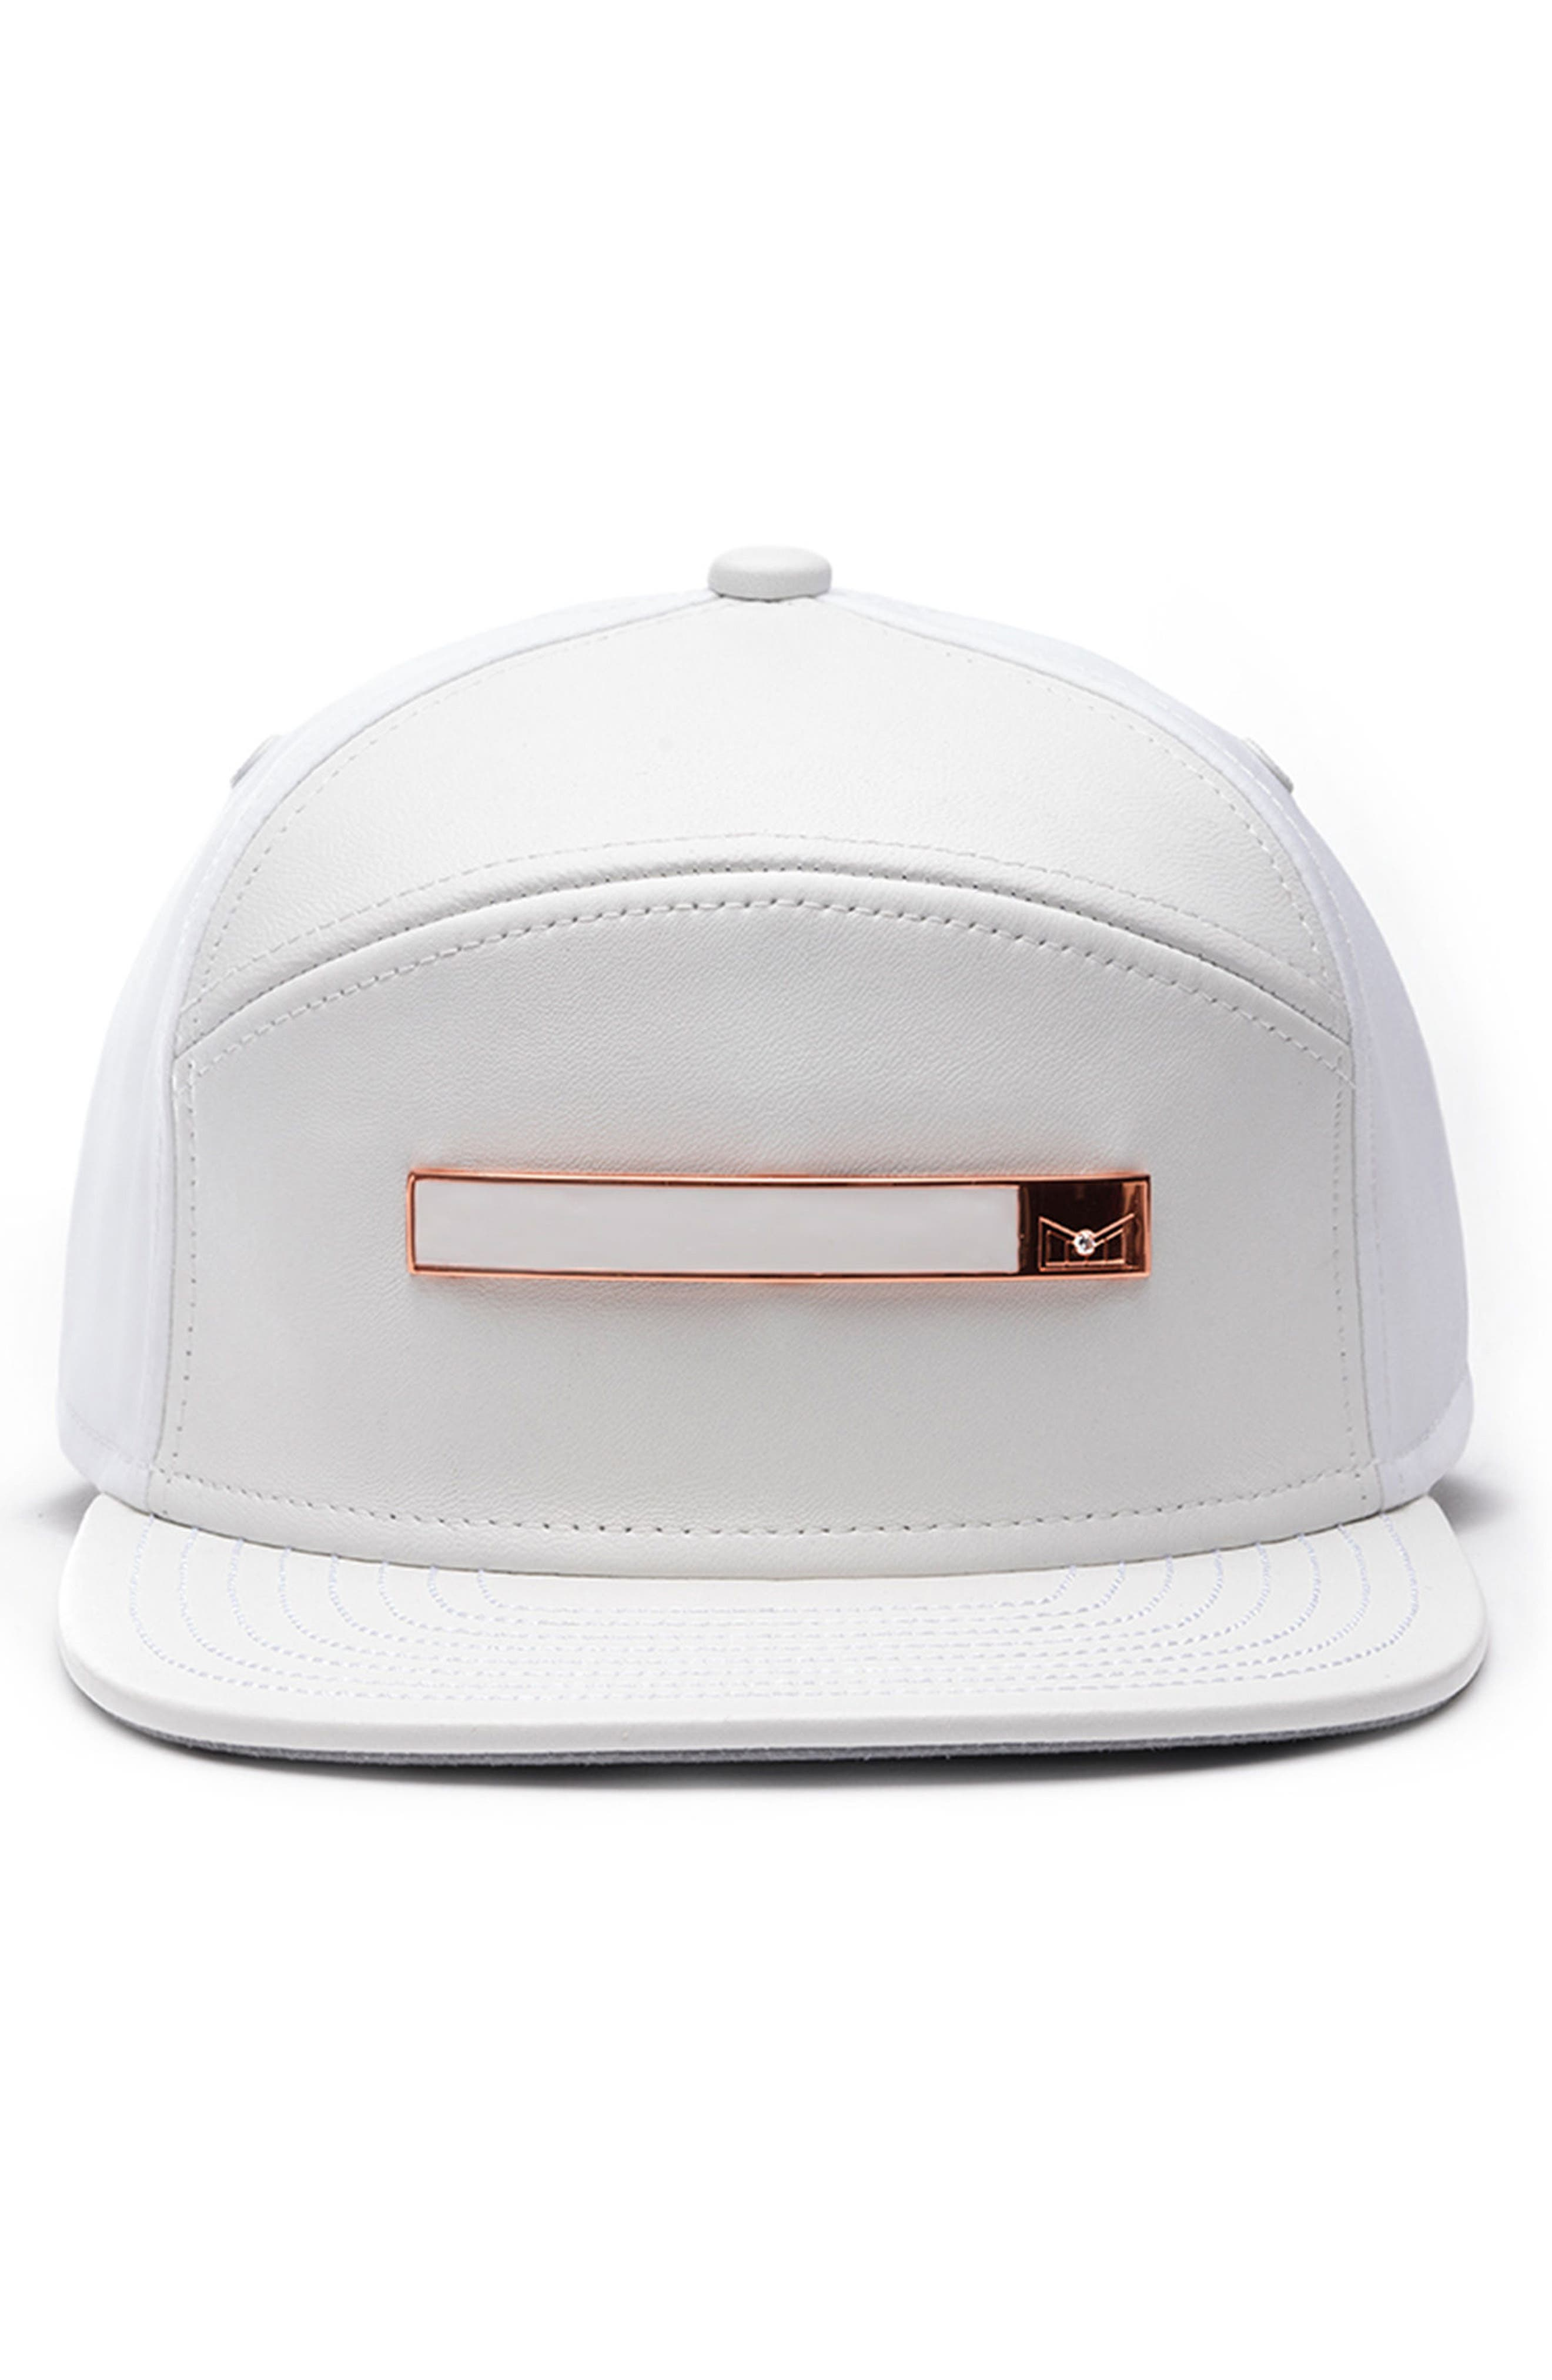 Dynasty V Limited Edition Leather, Cashmere, Wool & Diamond Cap,                             Alternate thumbnail 2, color,                             101